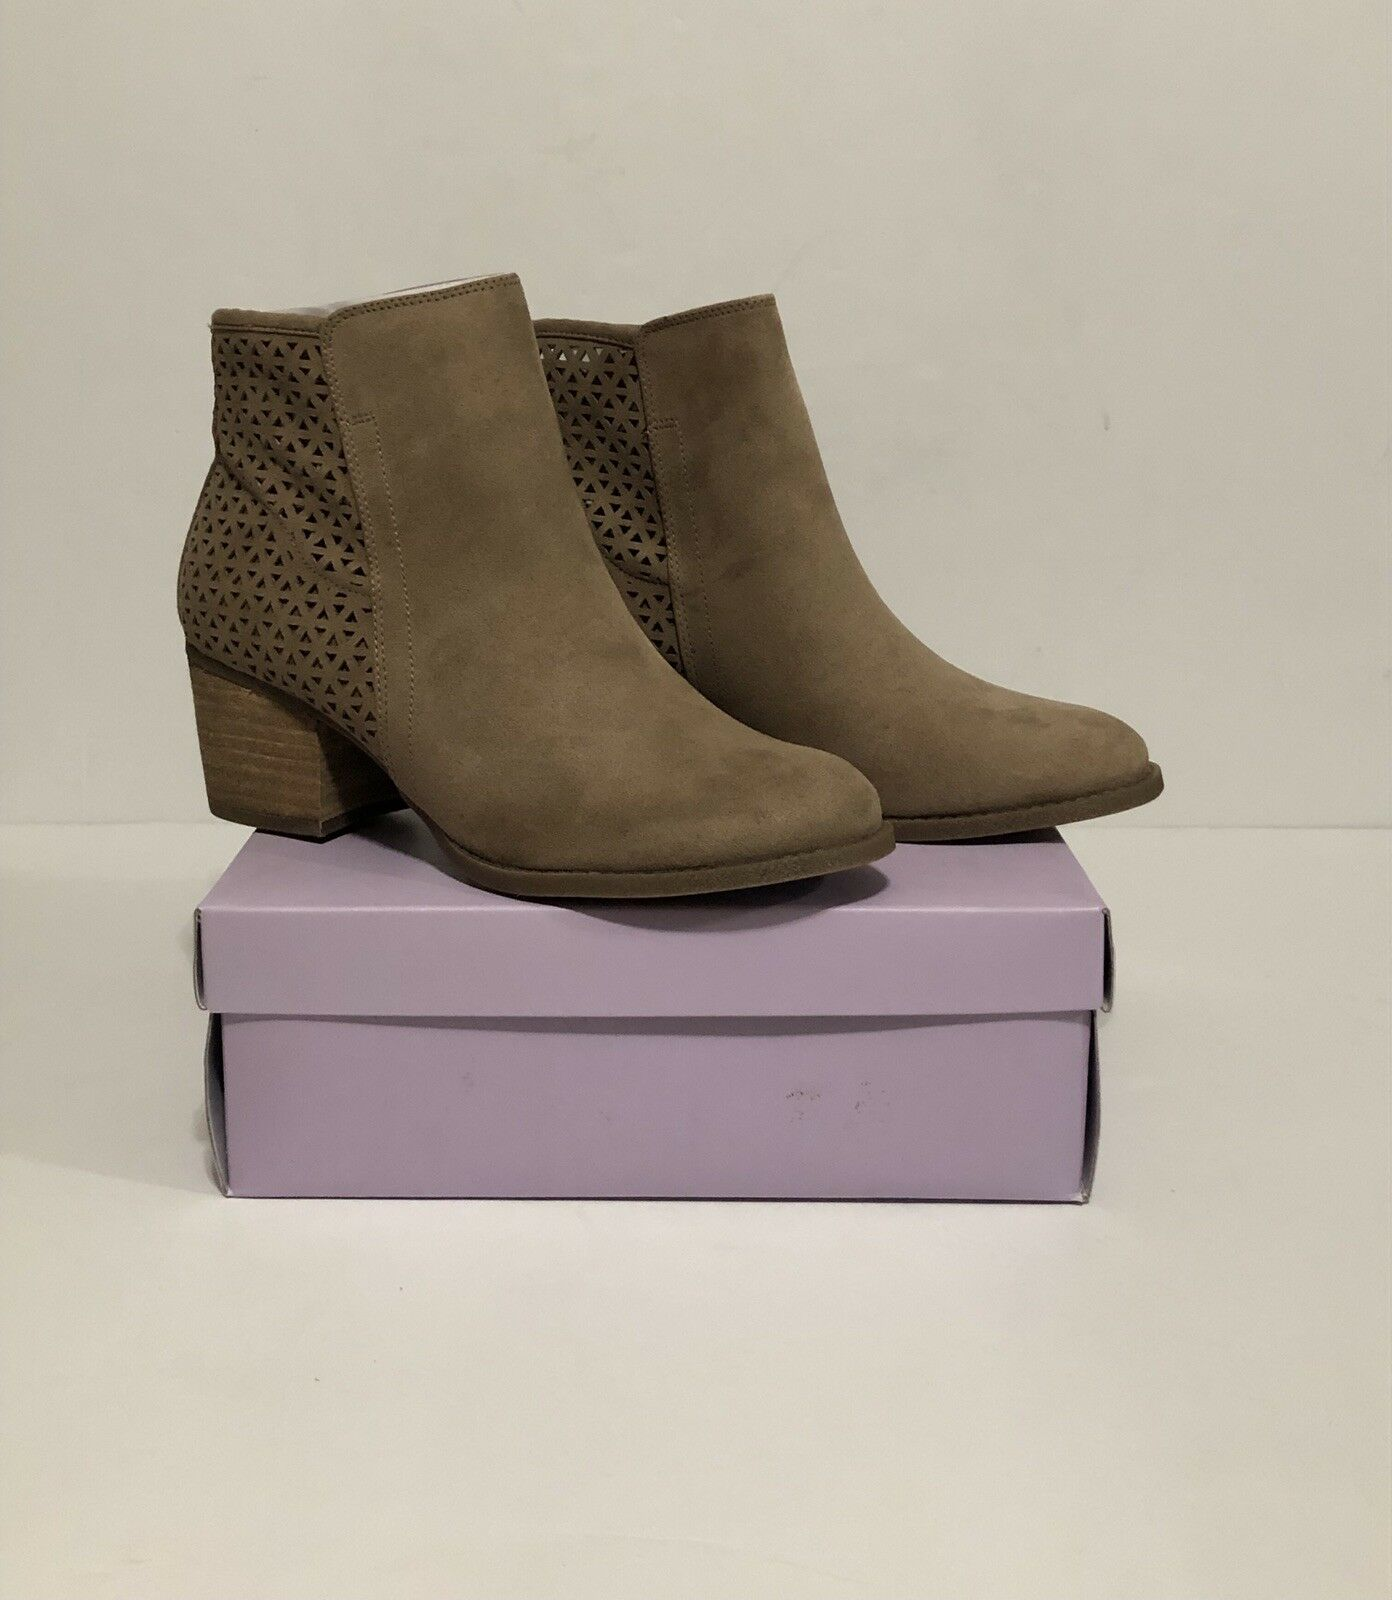 Madden Girl FAYTH Boot Booties Sand 10M Retail  79